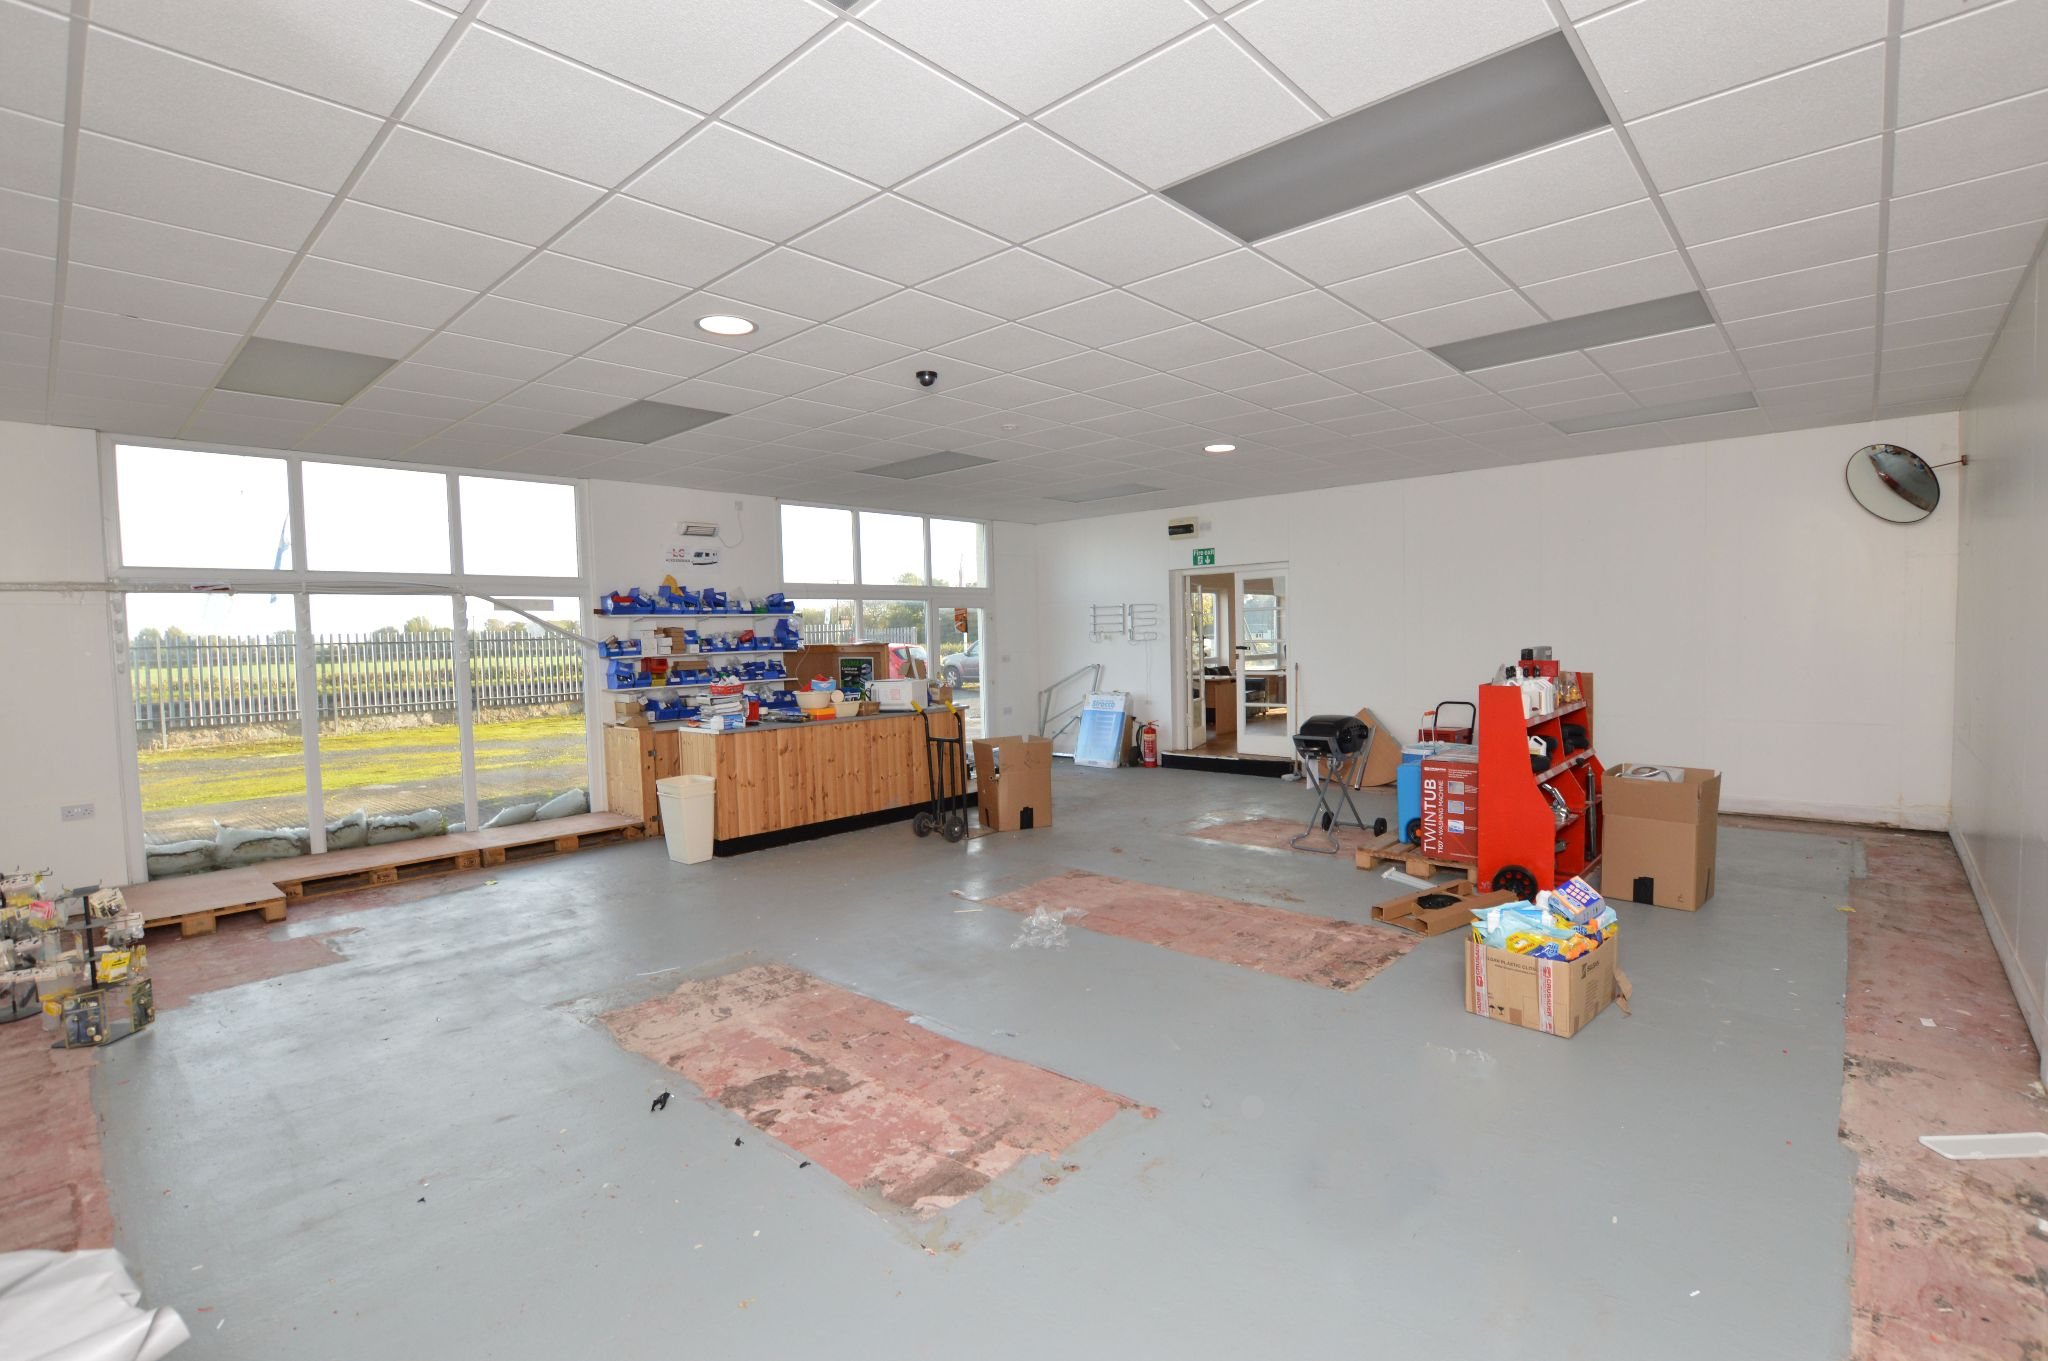 Land For Sale in Holywell - Show Room View 2